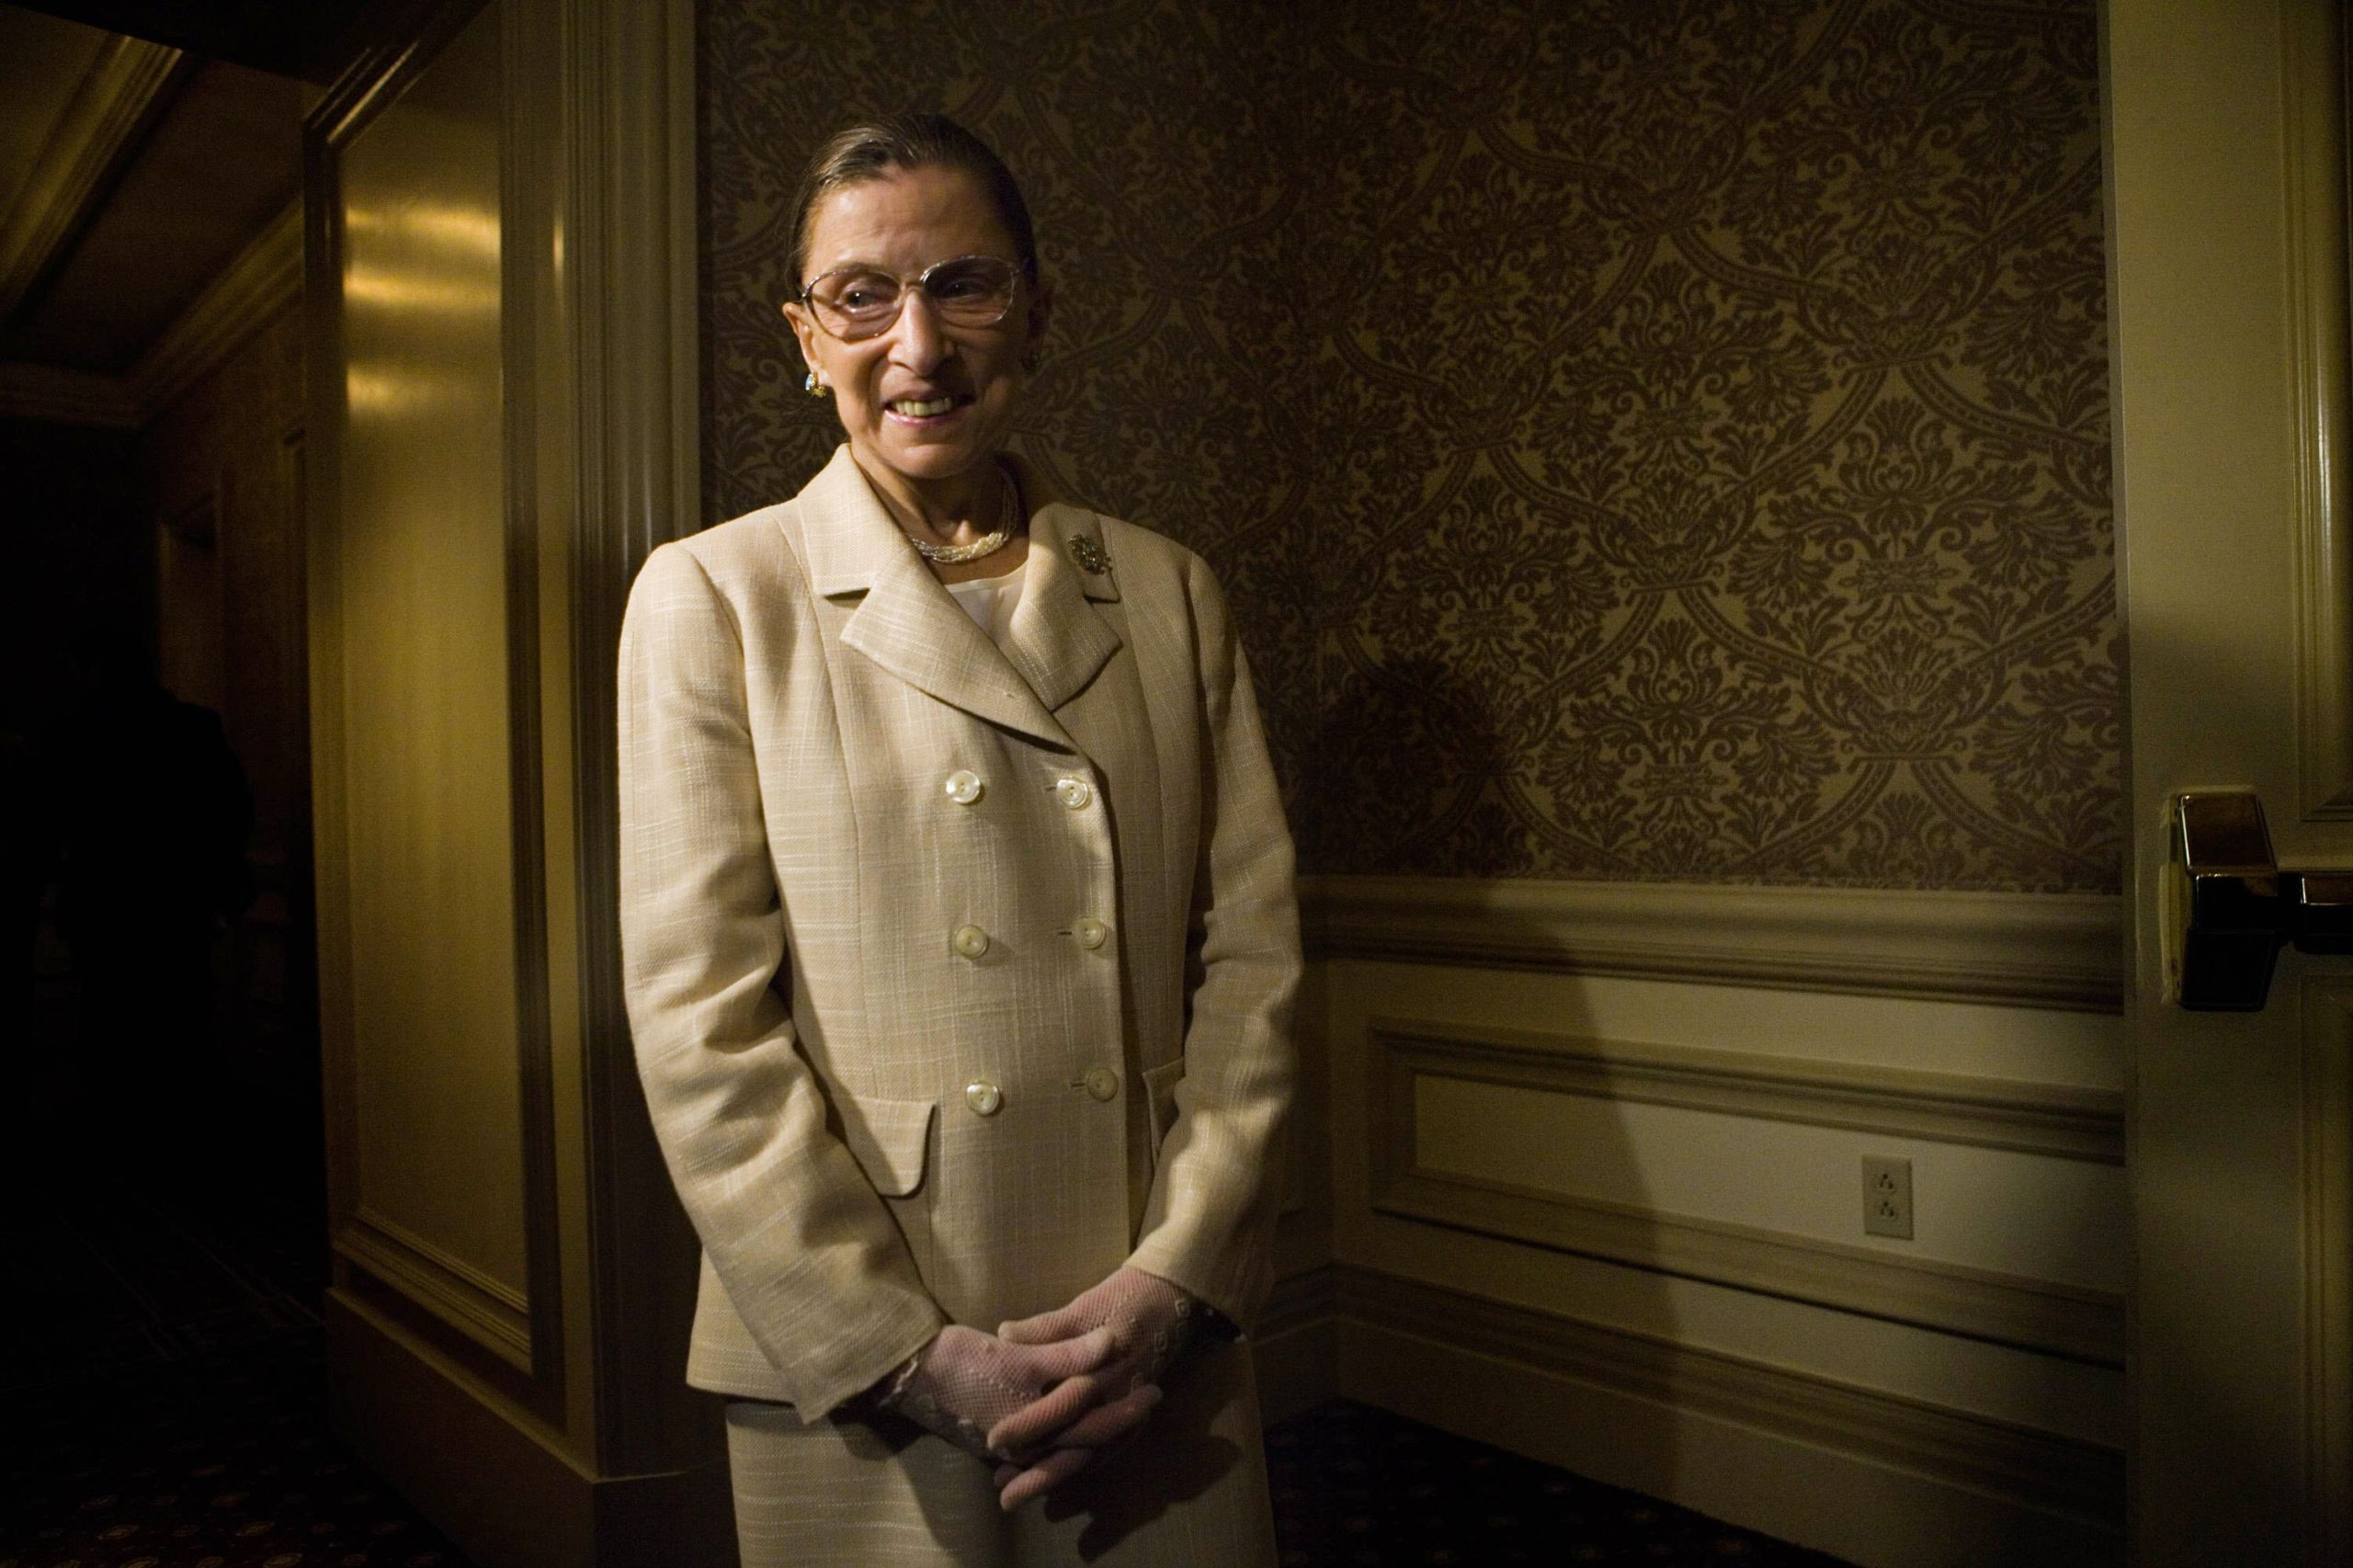 WASHINGTON - JUNE 8: U.S. Supreme Court Justice Ruth Bader Ginsburg waits to enter a dinner to honor Michelle Bachelet, Chile's first female president, May 8, 2006 in Washington, DC. Over 350 women leaders including Sen. Susan Collins (R-MI), Sen. Hillary Rodham Clinton (D-NY), Rep. Janice Schakowsky (D-Il), Rep. Katherine Harris (R-FL), US Treasurer Anna Escobedo Cabral, Actress Geena Davis and Editor-at-Large of Fortune Magazine Pattie Sellers are expected to attend. (Photo by Brendan Smialowski/Getty Images)